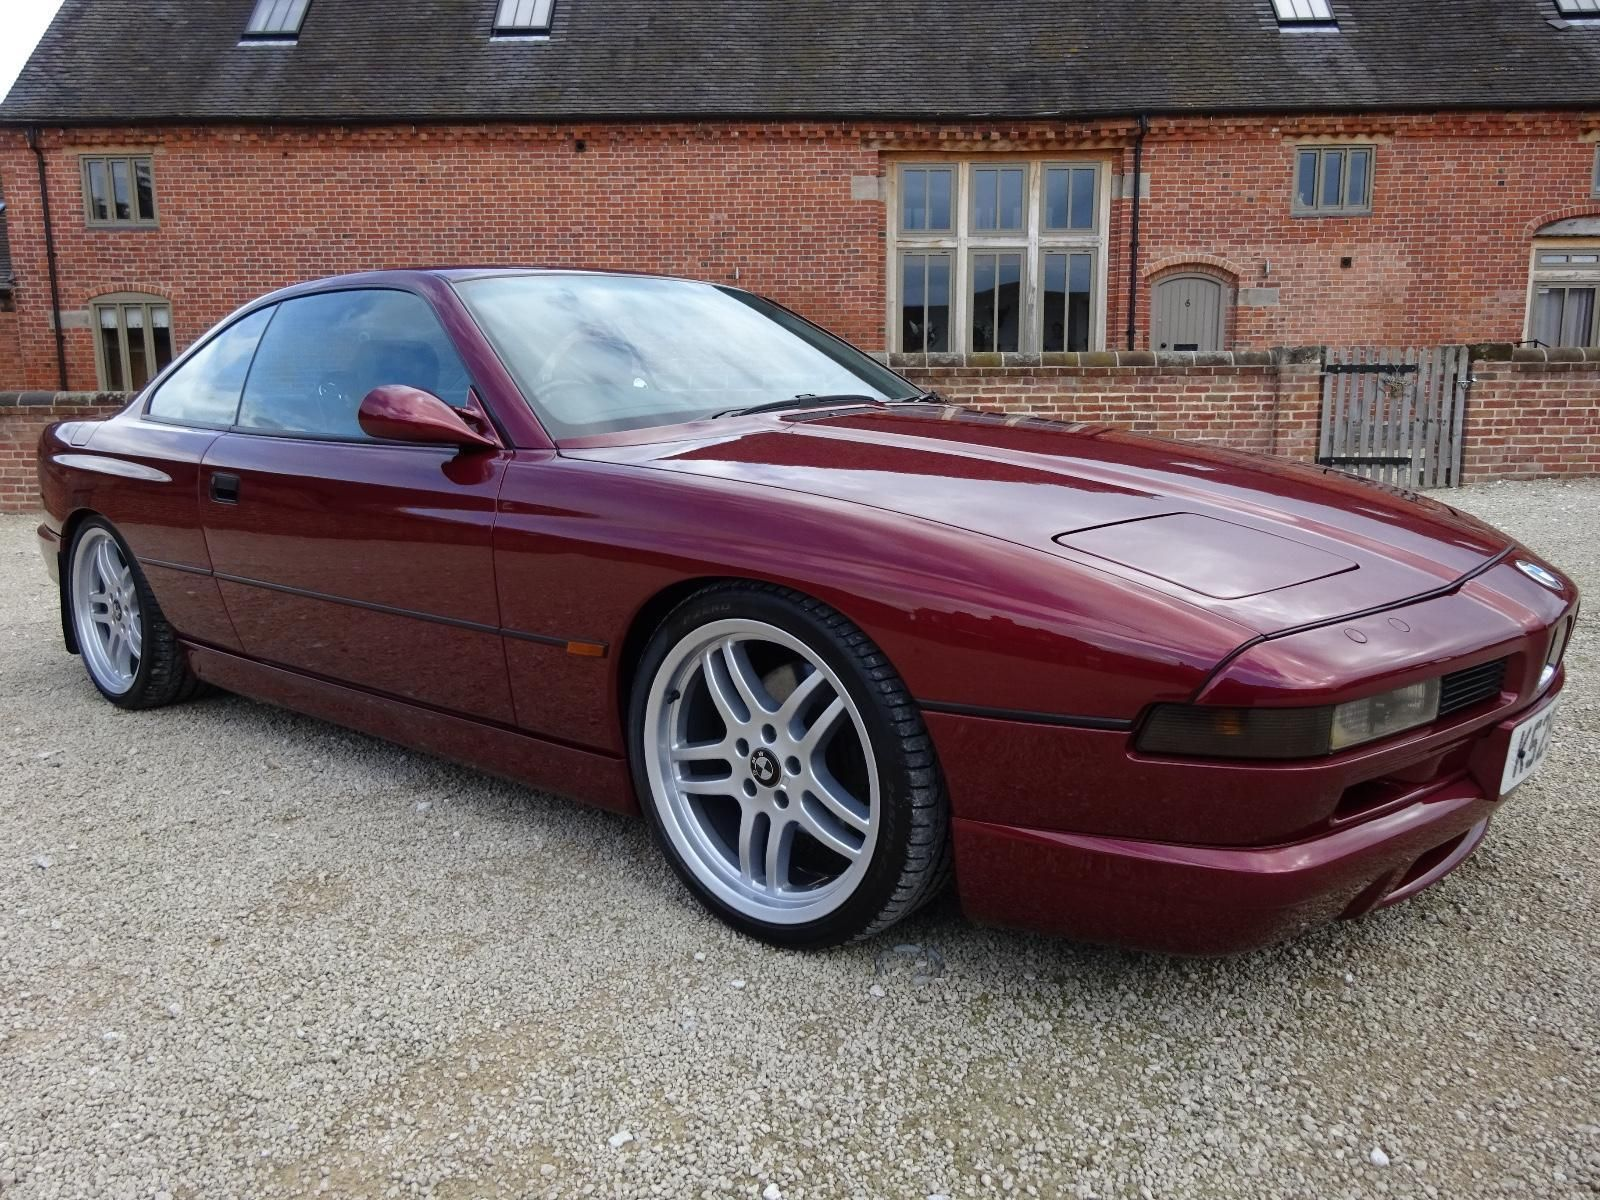 Bmw 850 Ci Auto 1993 Covered 82k Mls From New Rare Only 24 Autos Left In Uk Ebay Bmw Classic Car Sales Car